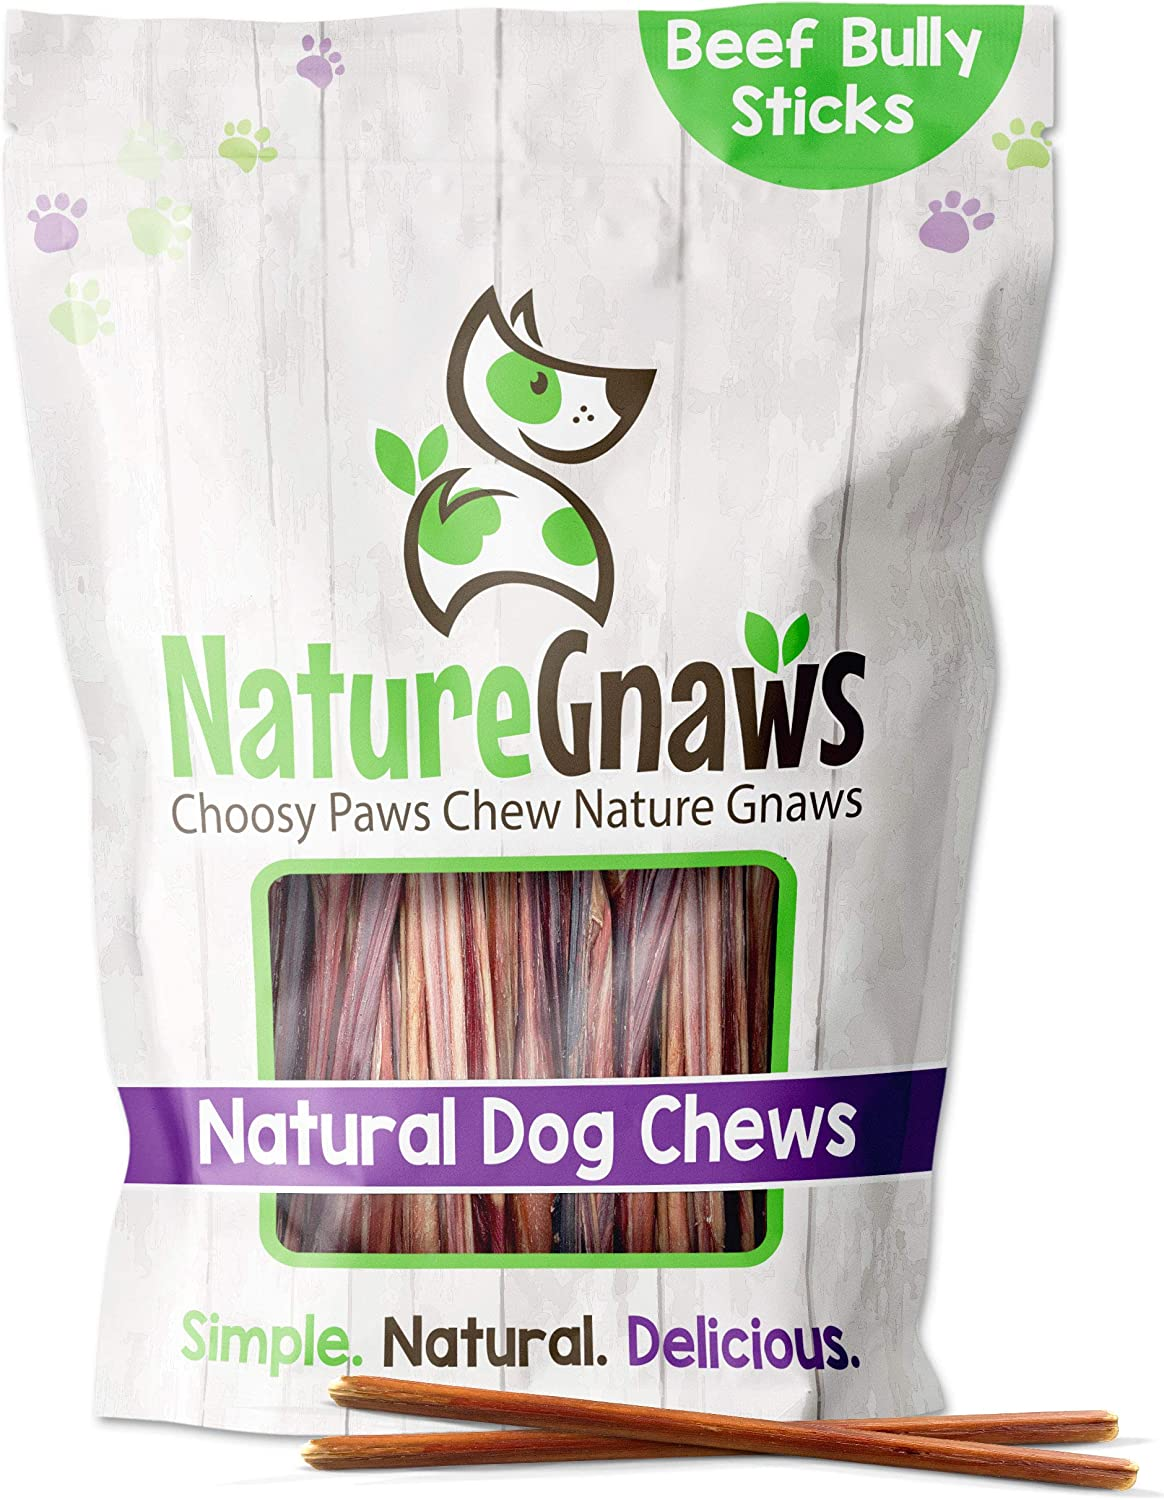 Nature Gnaws Extra Thin Bully Sticks for Small Dogs & Puppies - Premium Natural Beef Bones